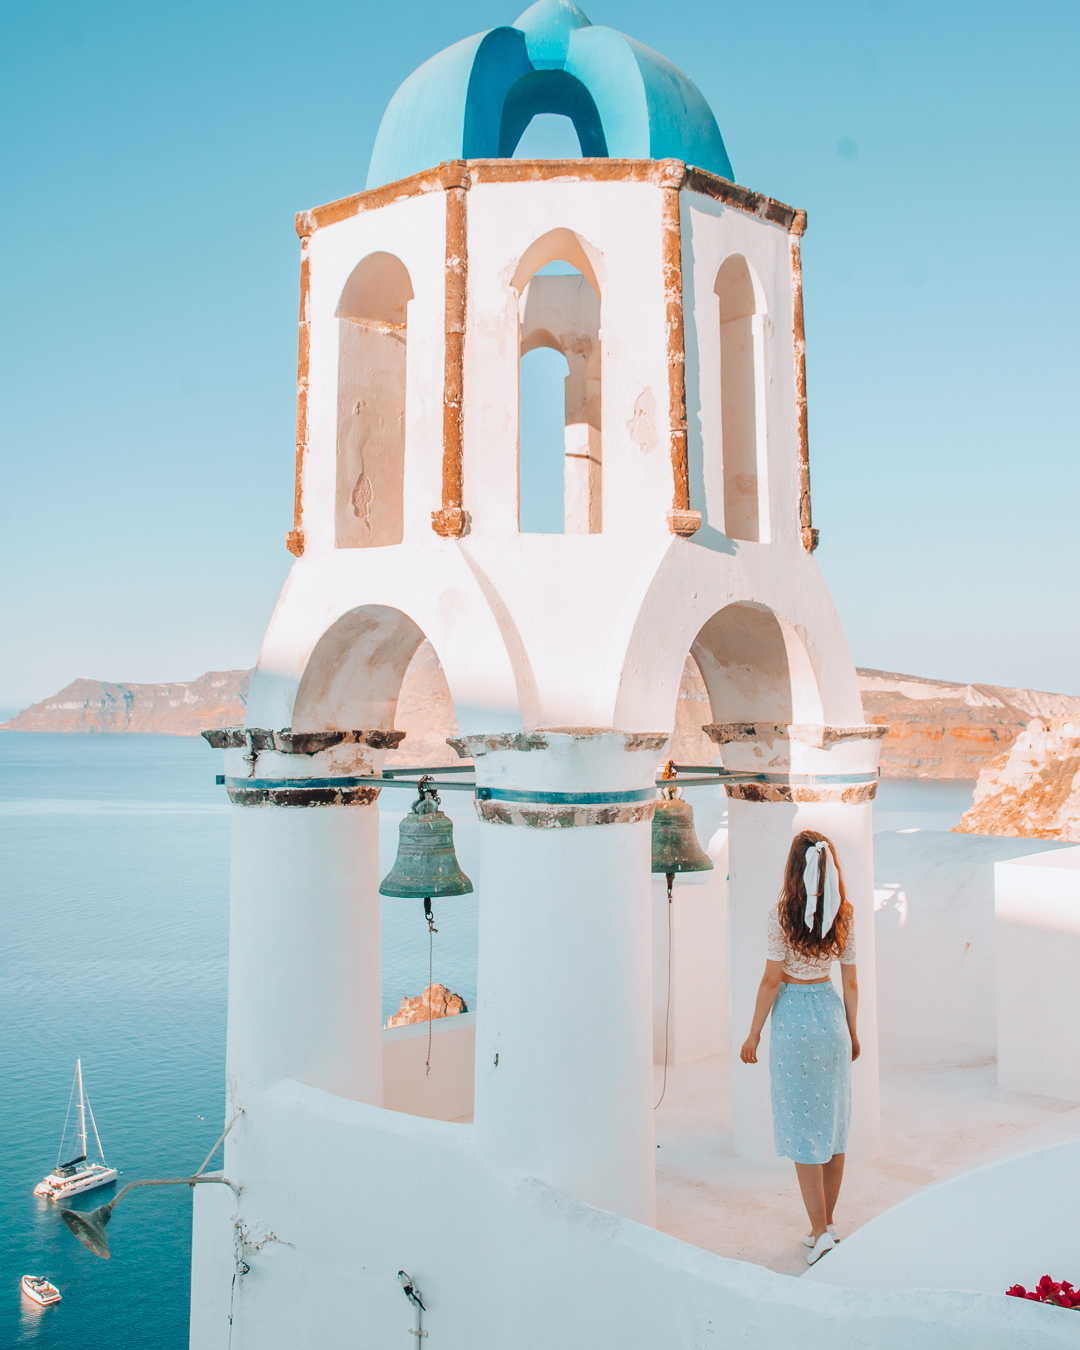 Girl looking at a bell tower in Santorini